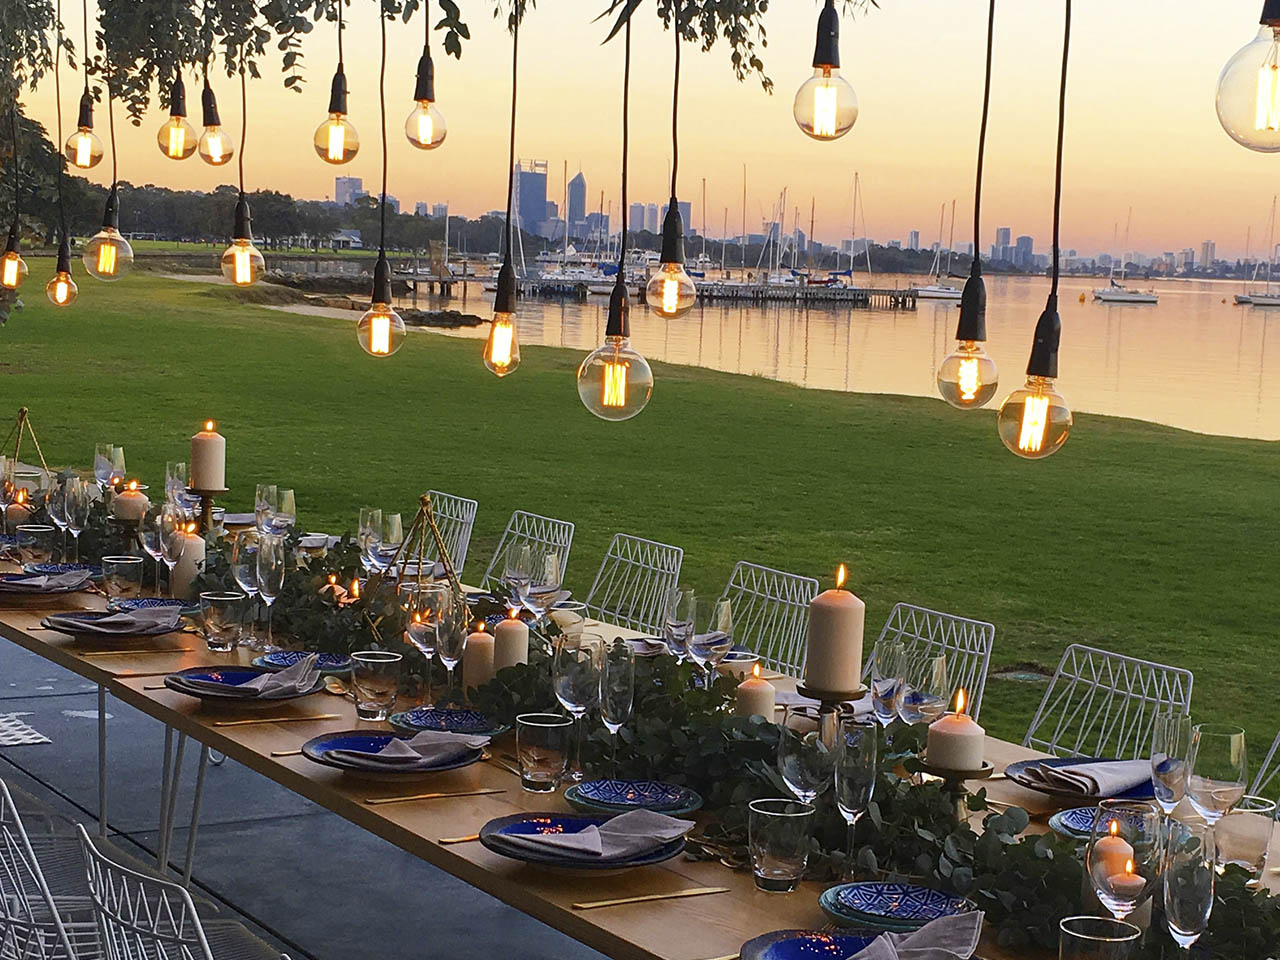 Beautiful Outdoor River-side Wedding Dining Room Setting With Long-table And Large Hanging Light Bulbs. Table Is Decorated With Vines, Wine Classes, Roses, Lit Candles And Dining Set.